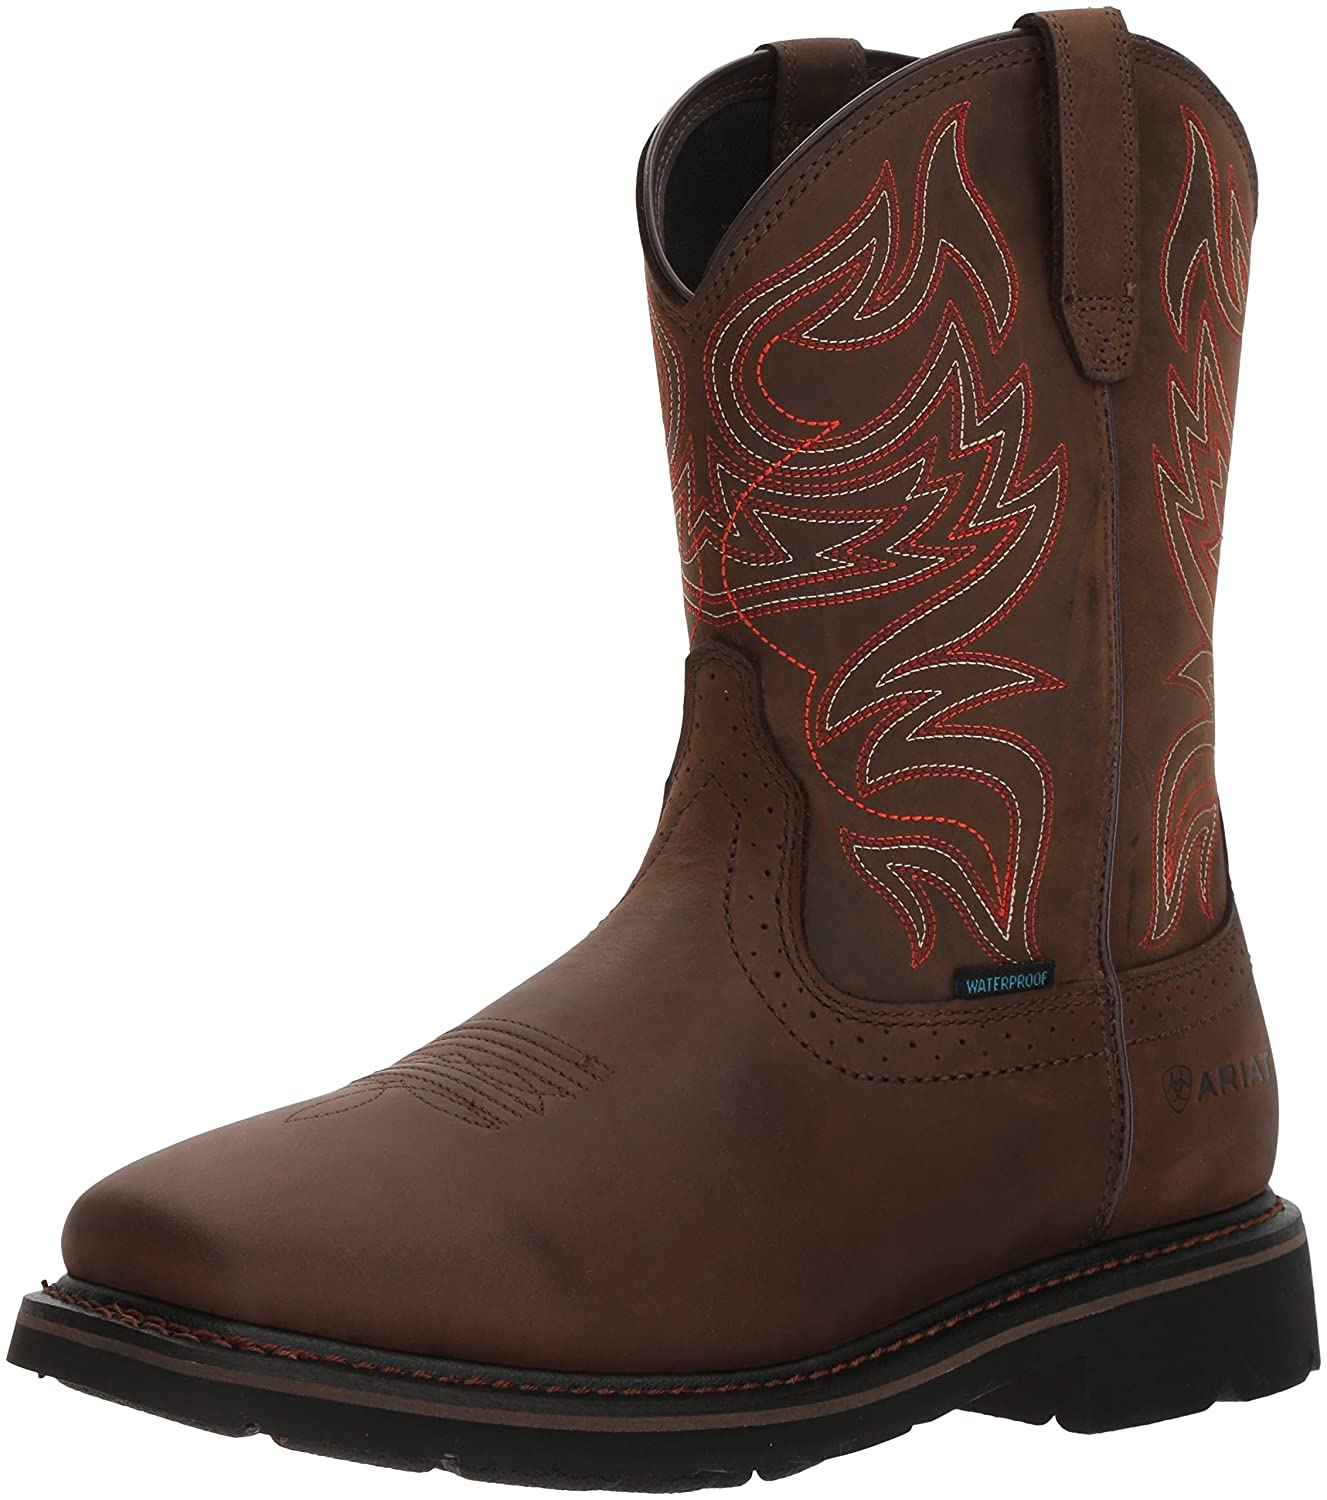 Ariat Work メンズ Sierra Delta H2O B076MCRB9K 10 D(M) US|Oily Distressed Brown Oily Distressed Brown 10 D(M) US